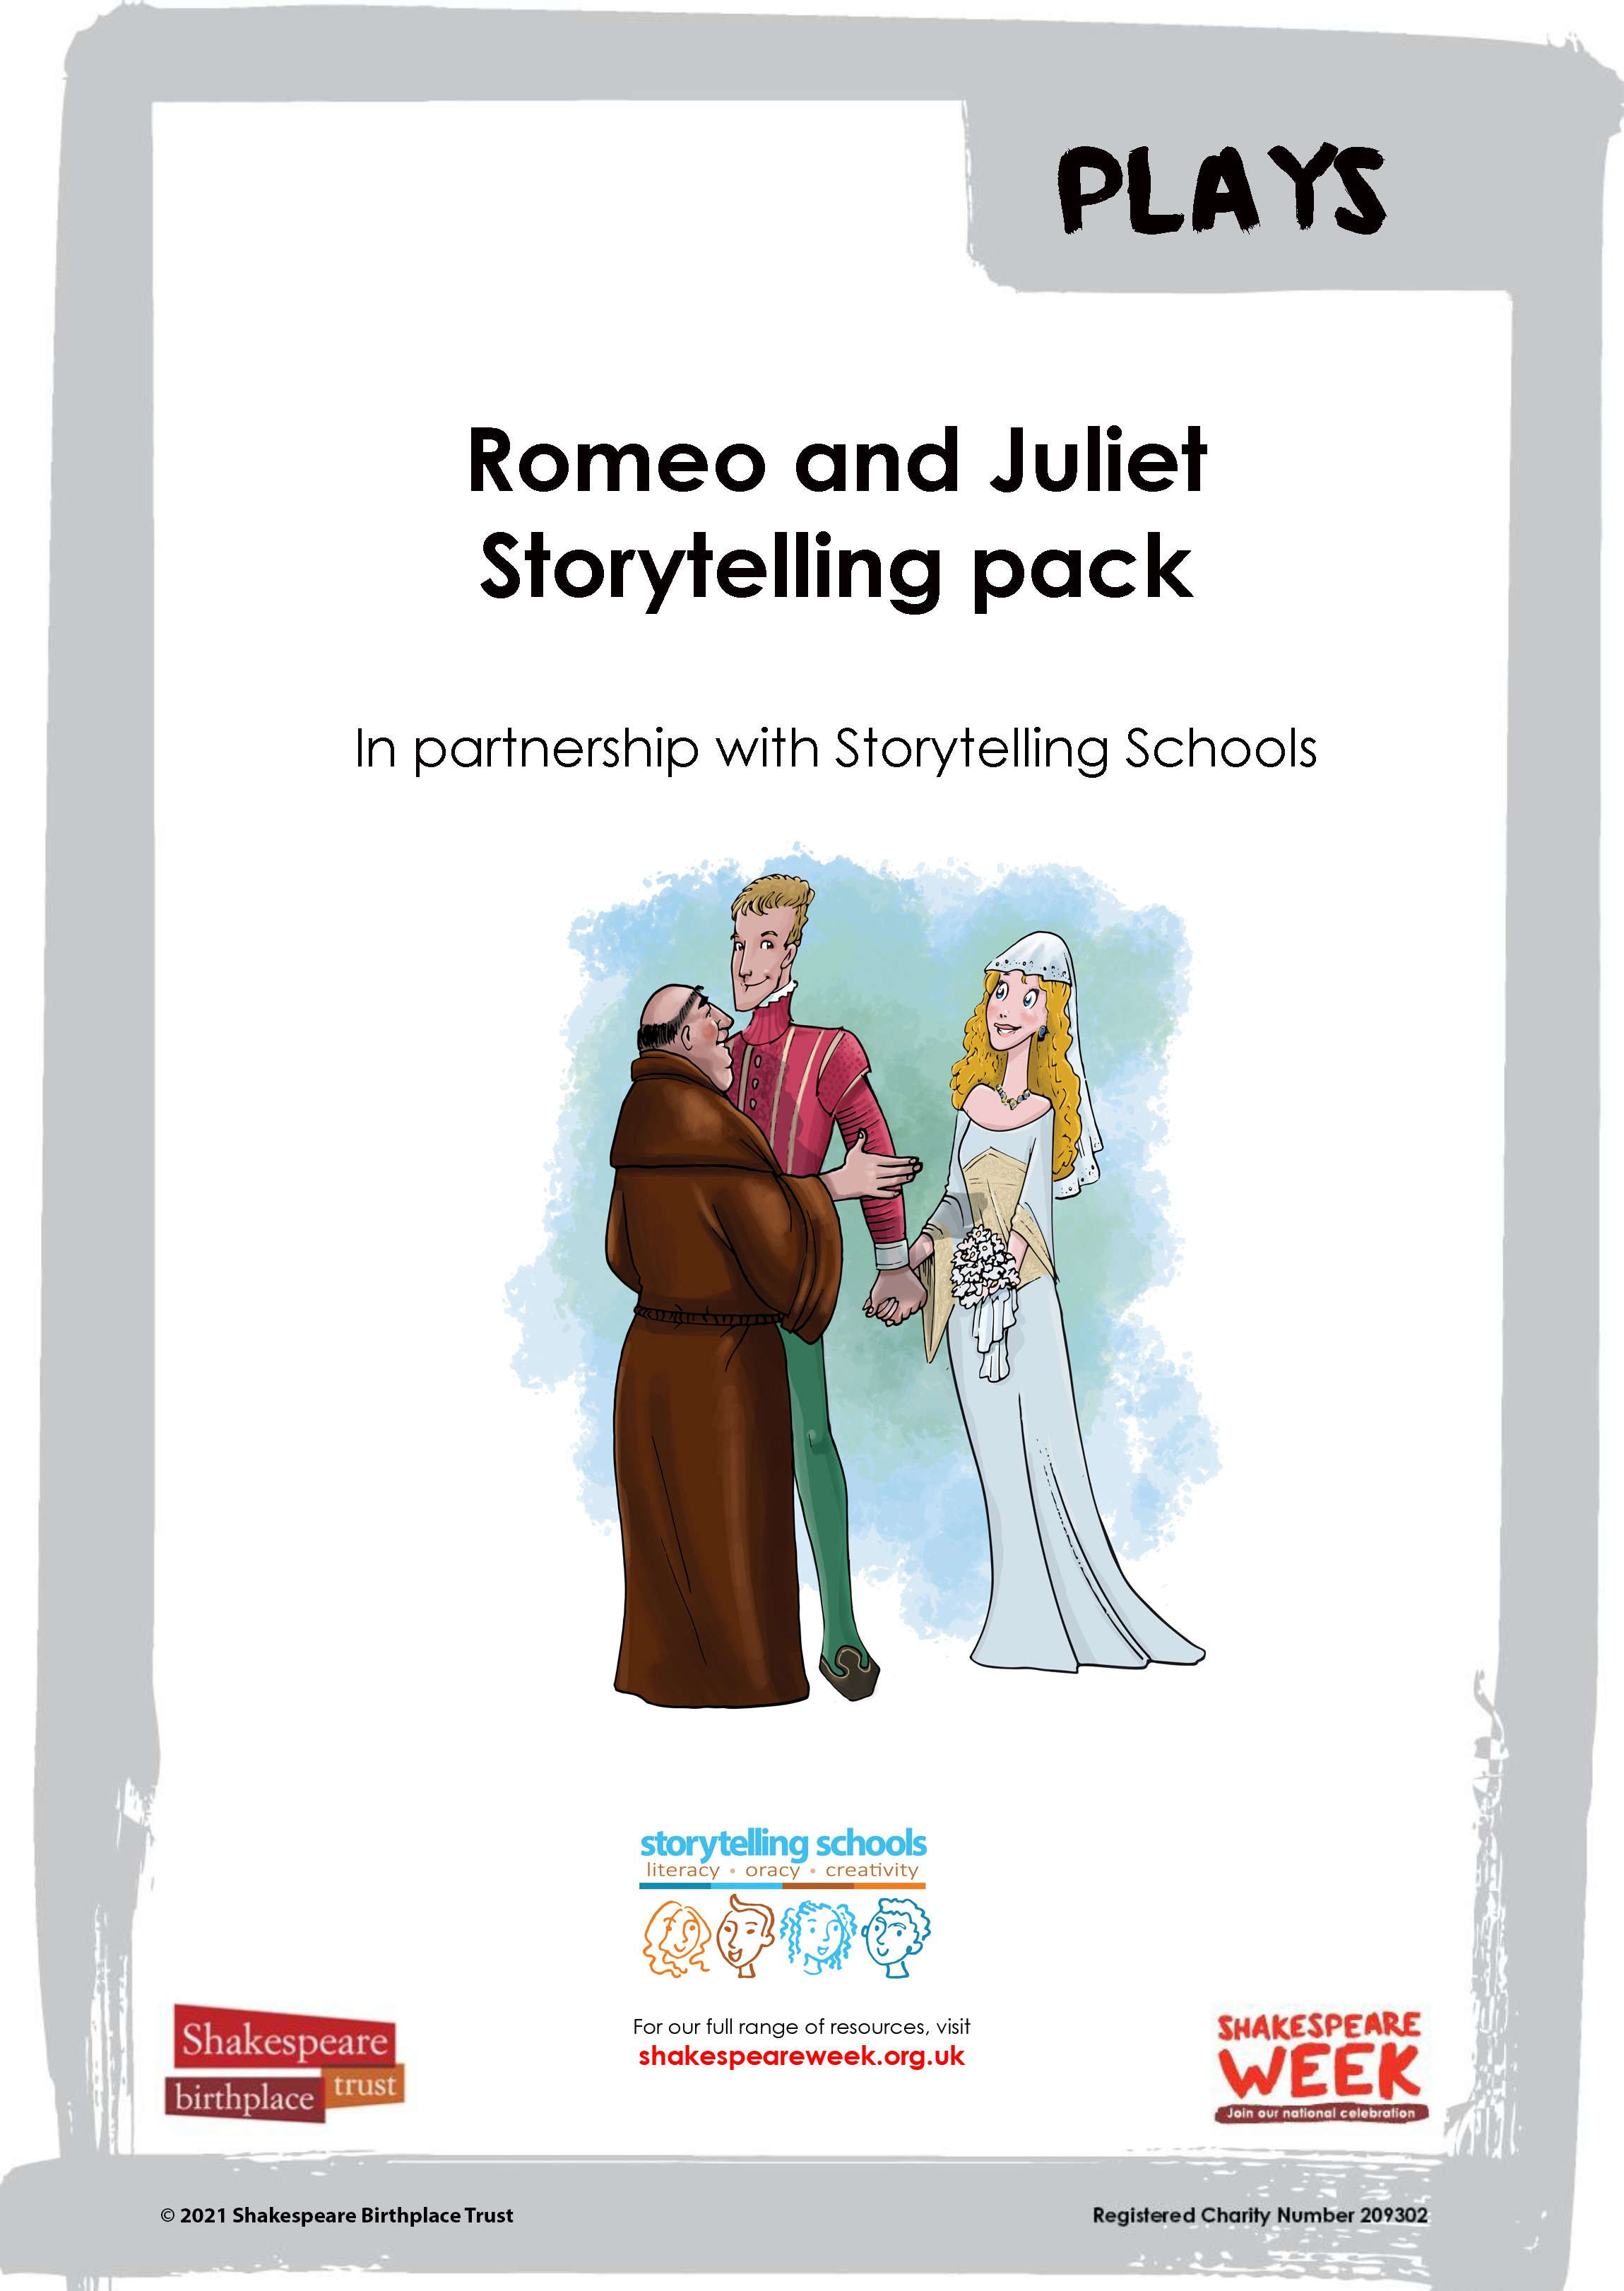 Romeo and Juliet storytelling resource pack cover.jpg